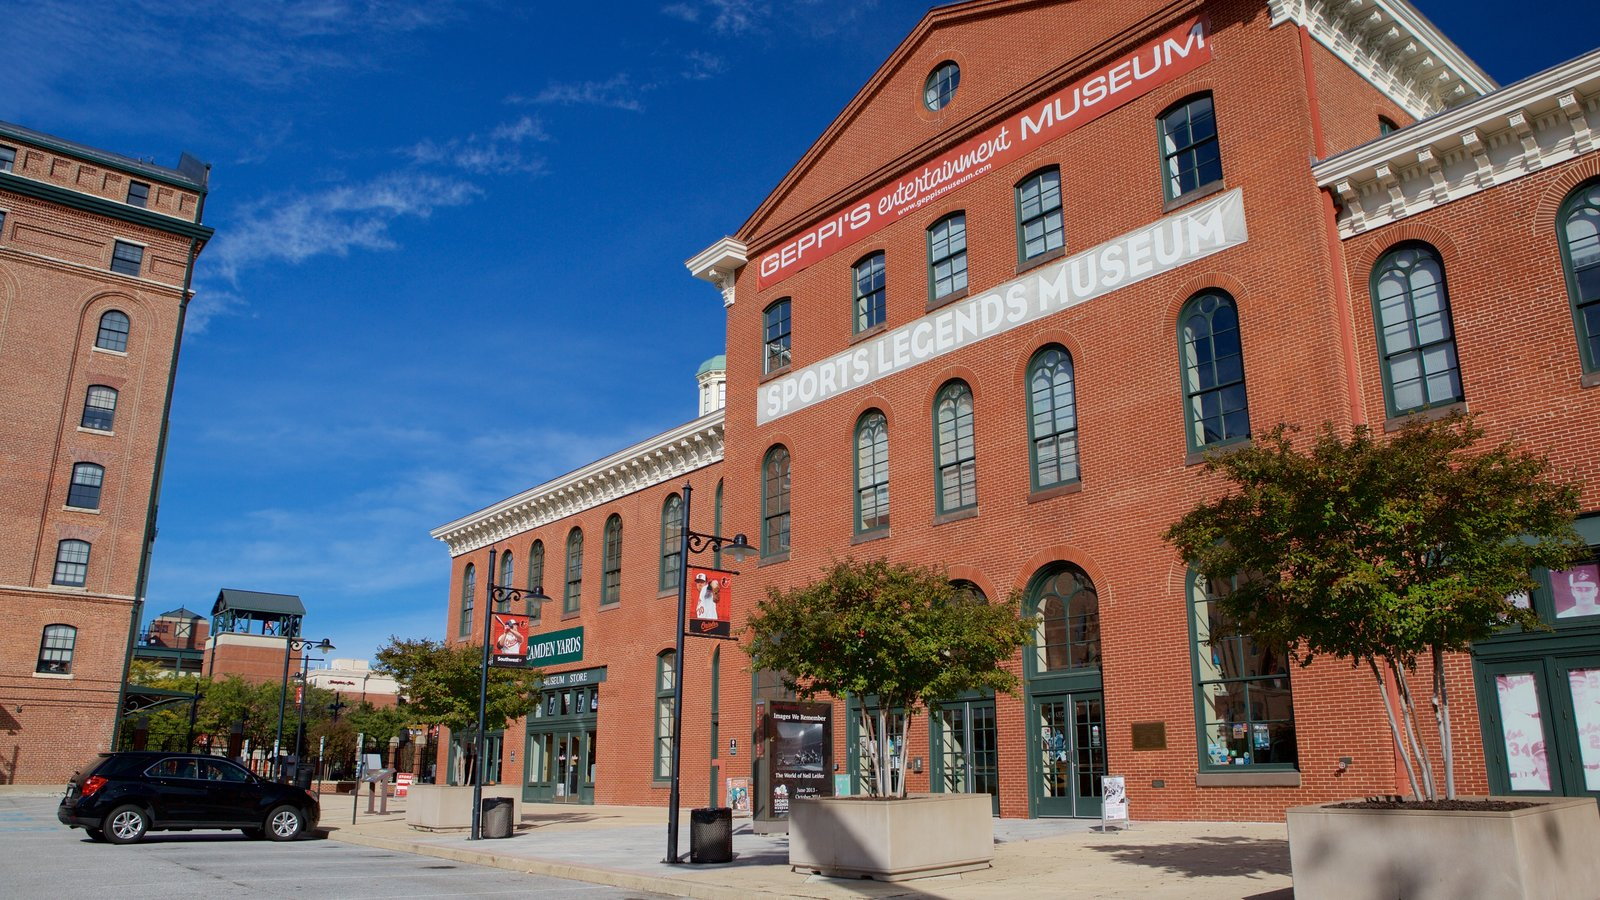 Sports Legends Museum at Camden Yards showing heritage architecture